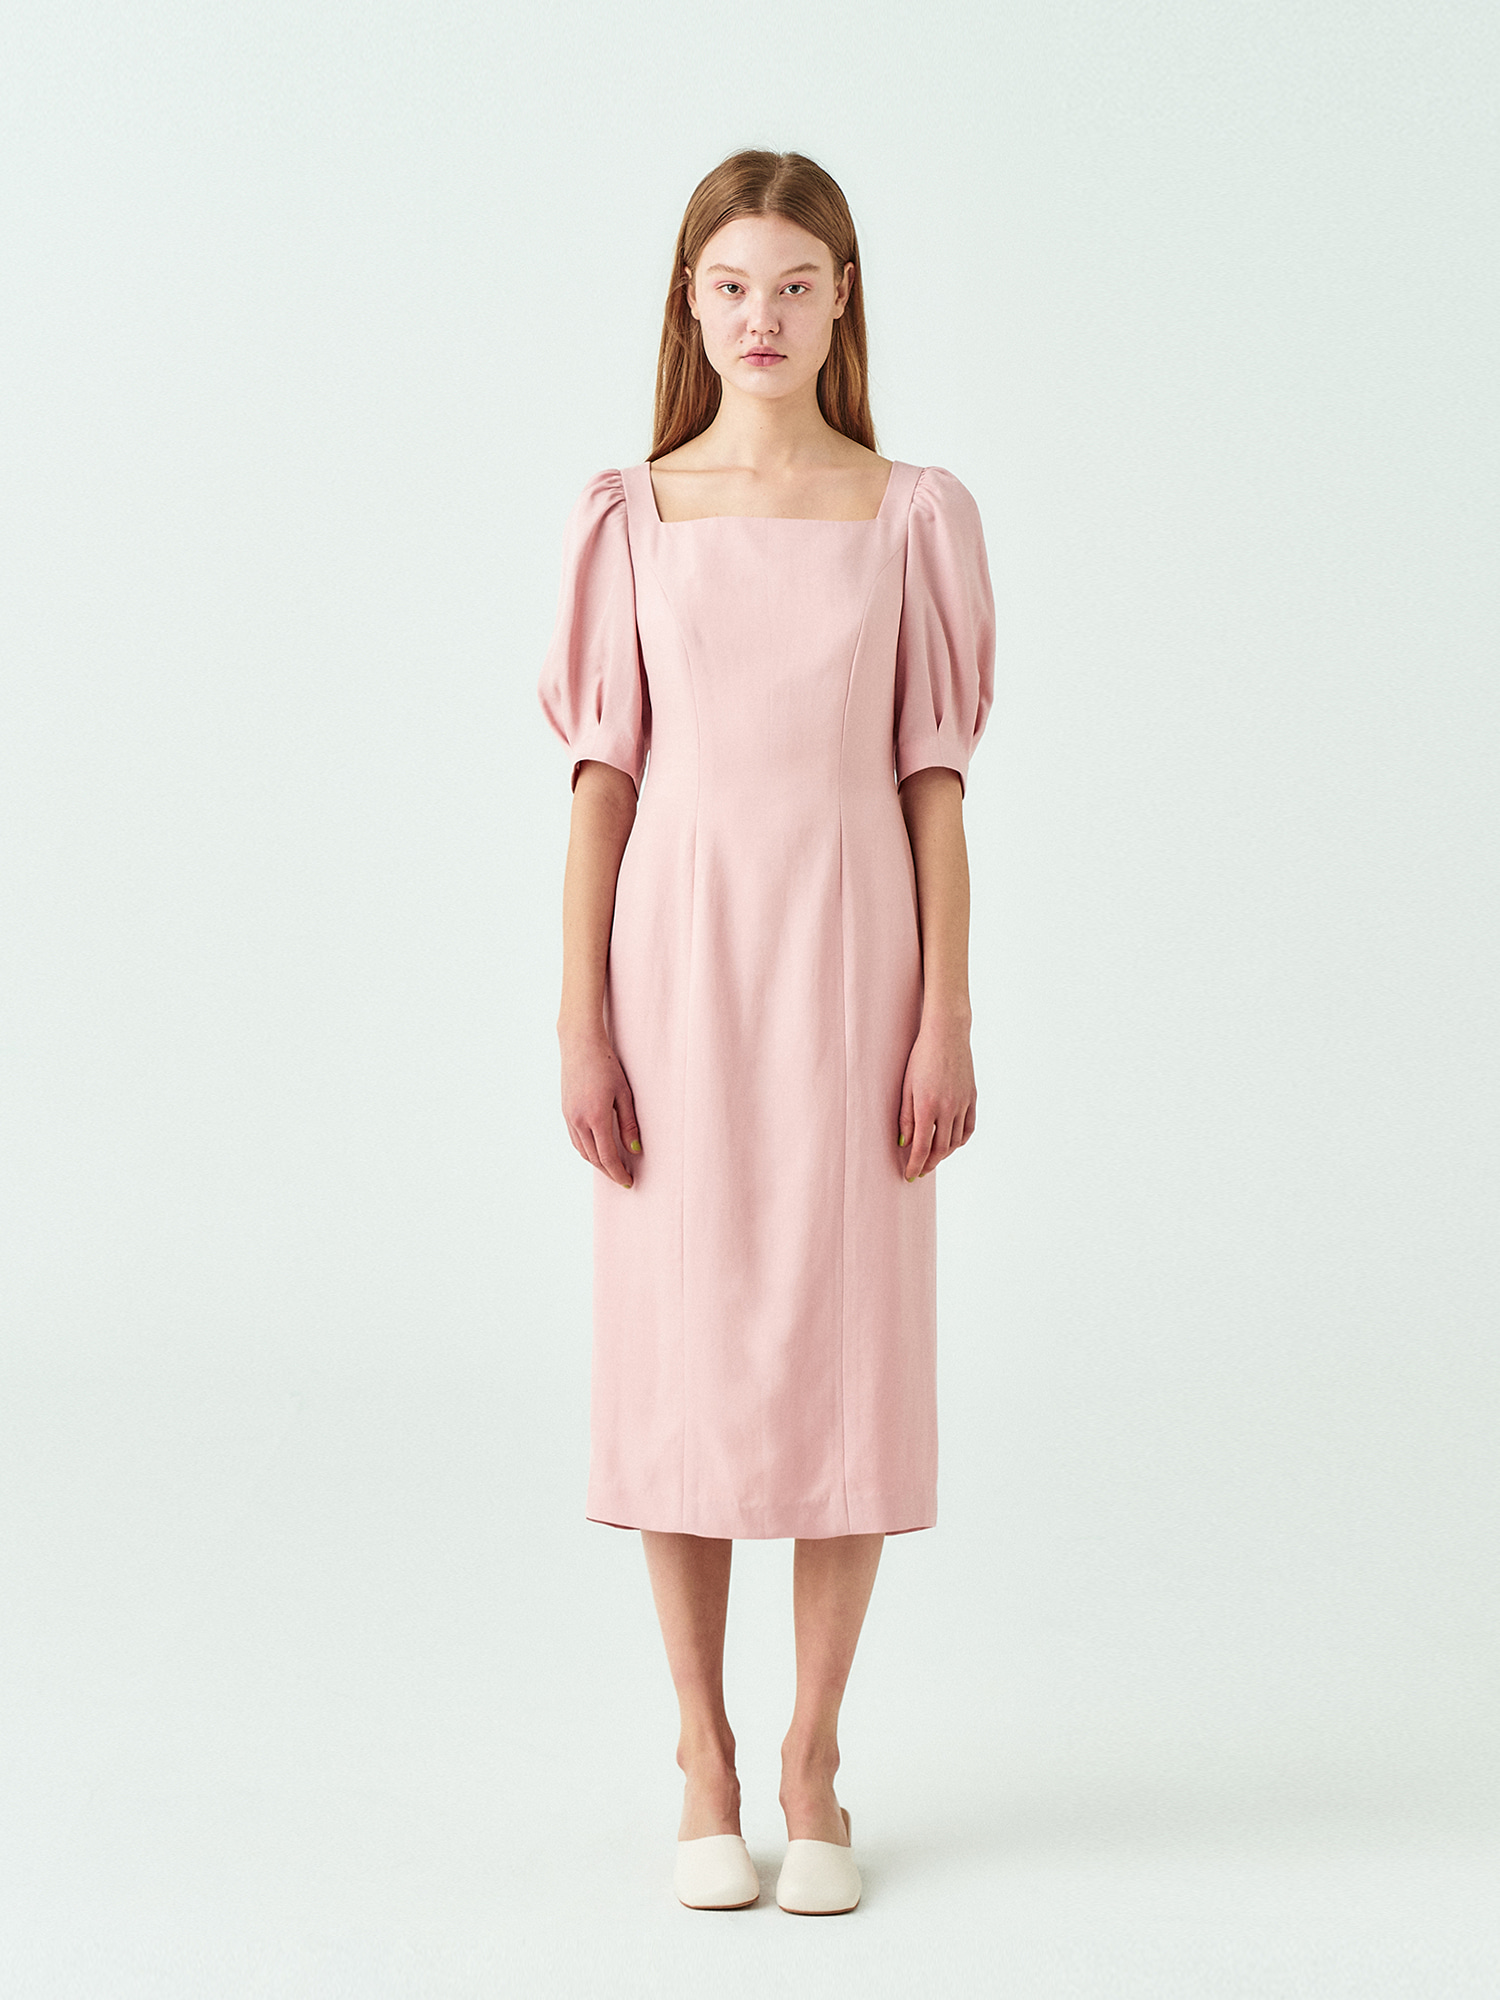 Square Neck Line Dress in Pink